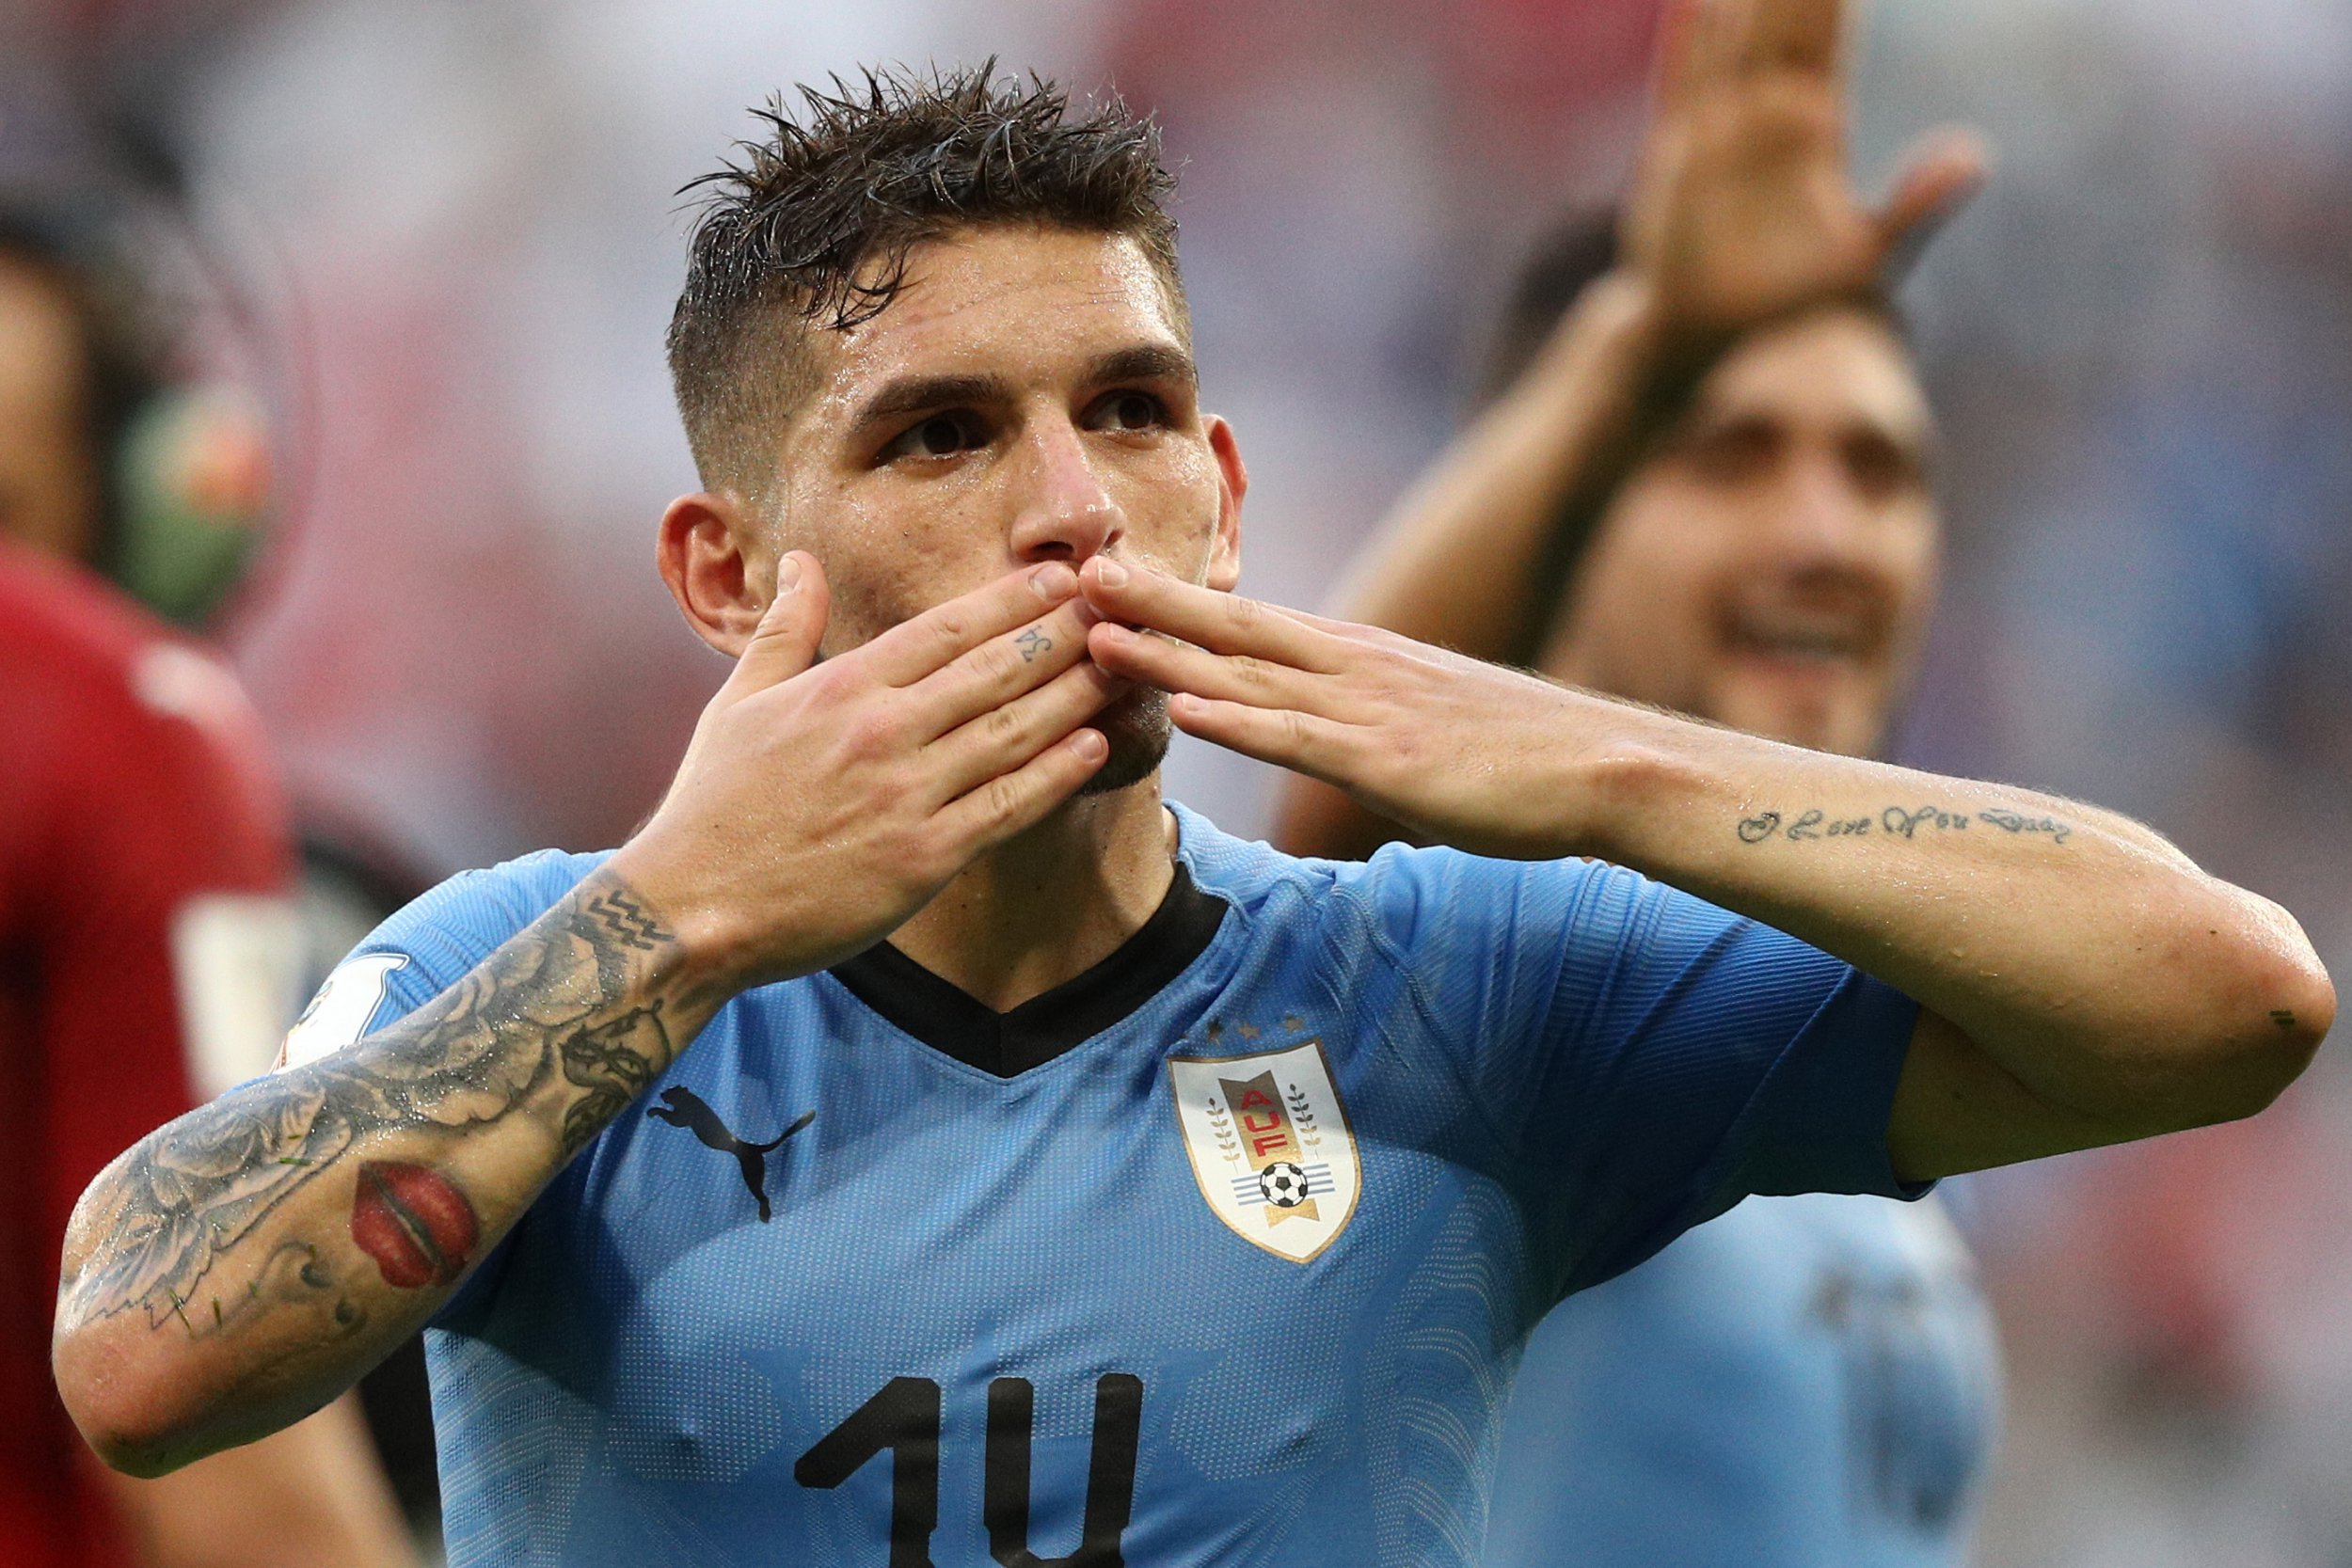 Sampdoria chief drops major clue that Lucas Torreira's Arsenal transfer is complete